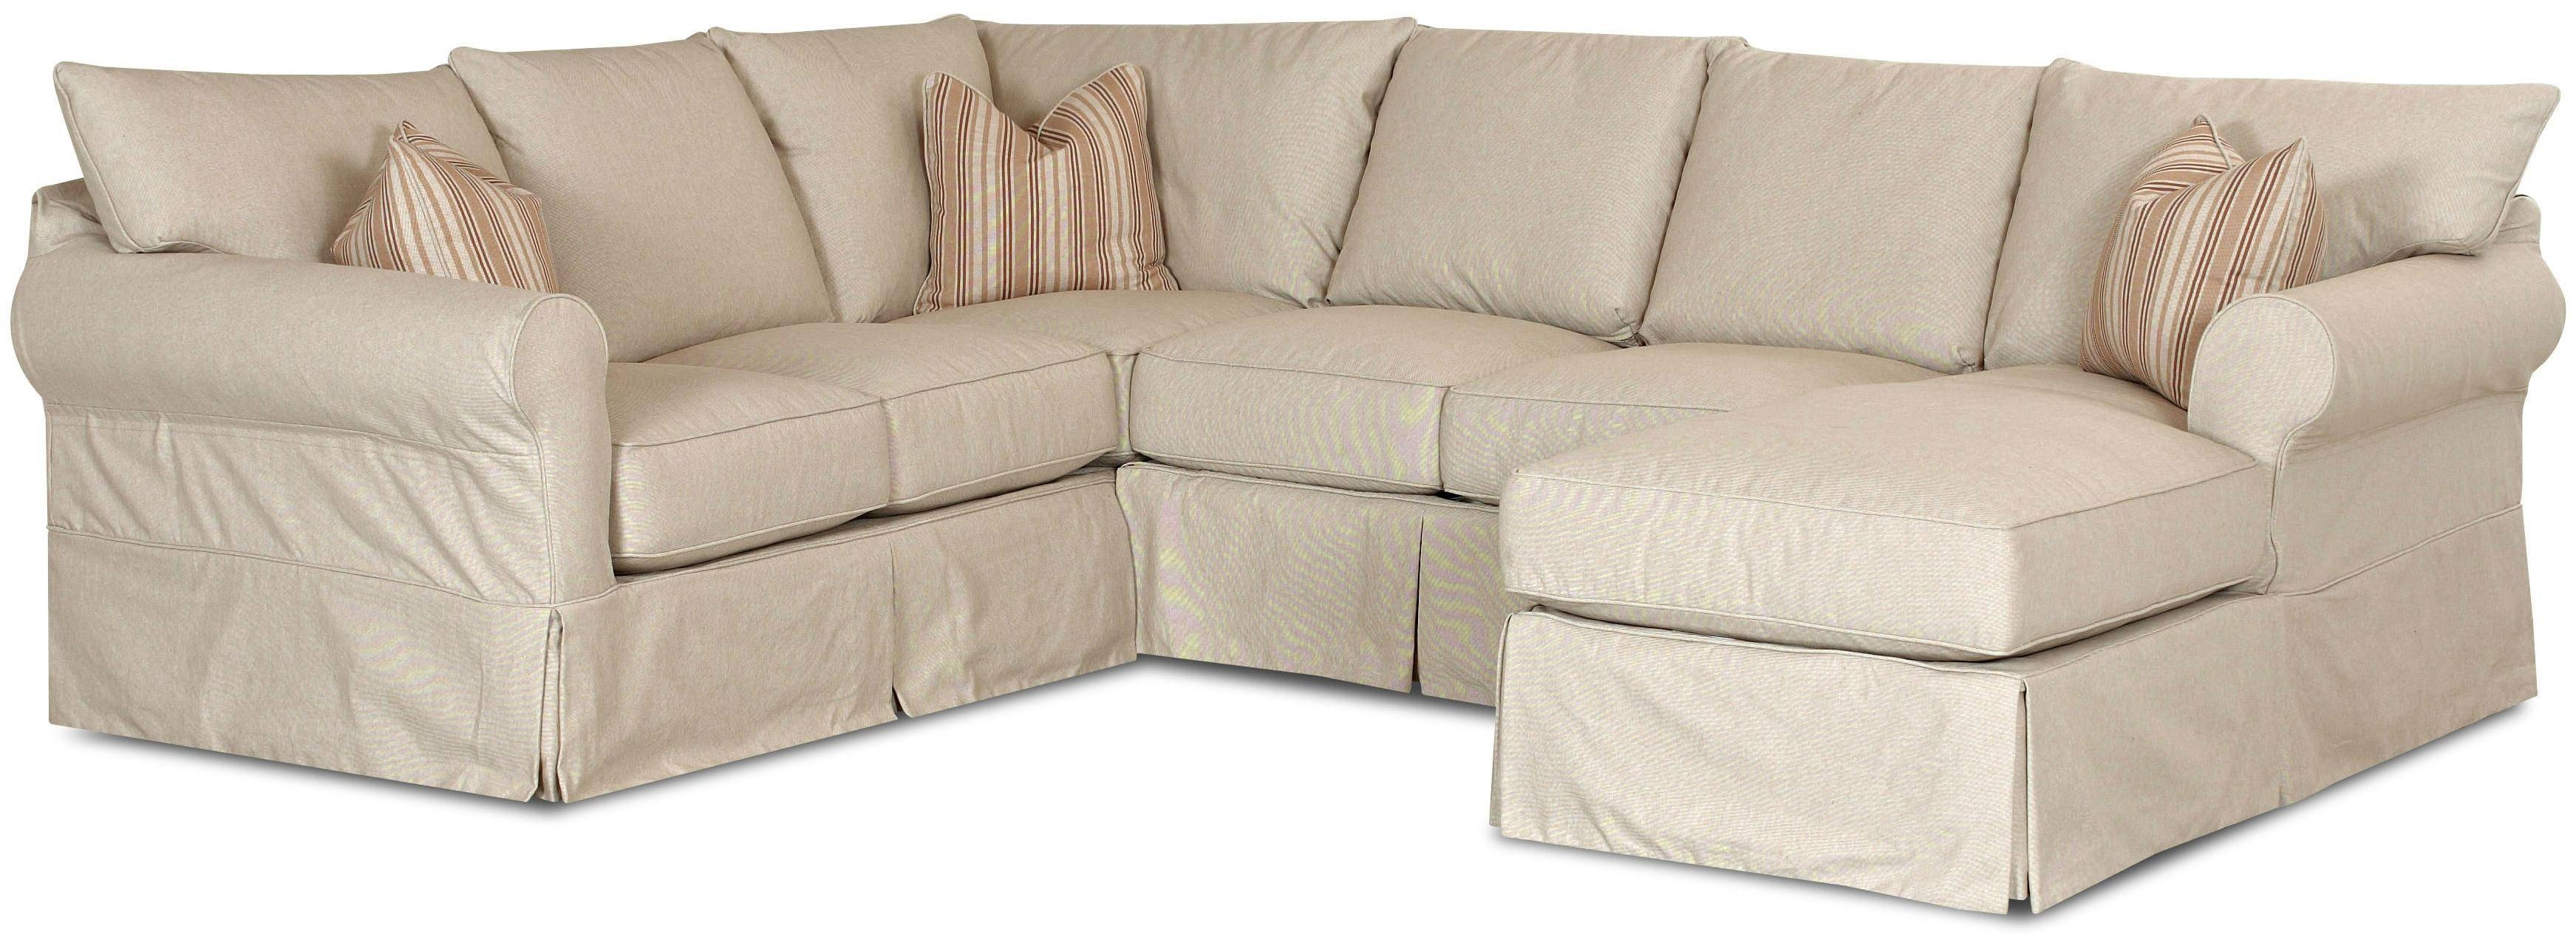 Popular Photo of Sofas Cover For Sectional Sofas